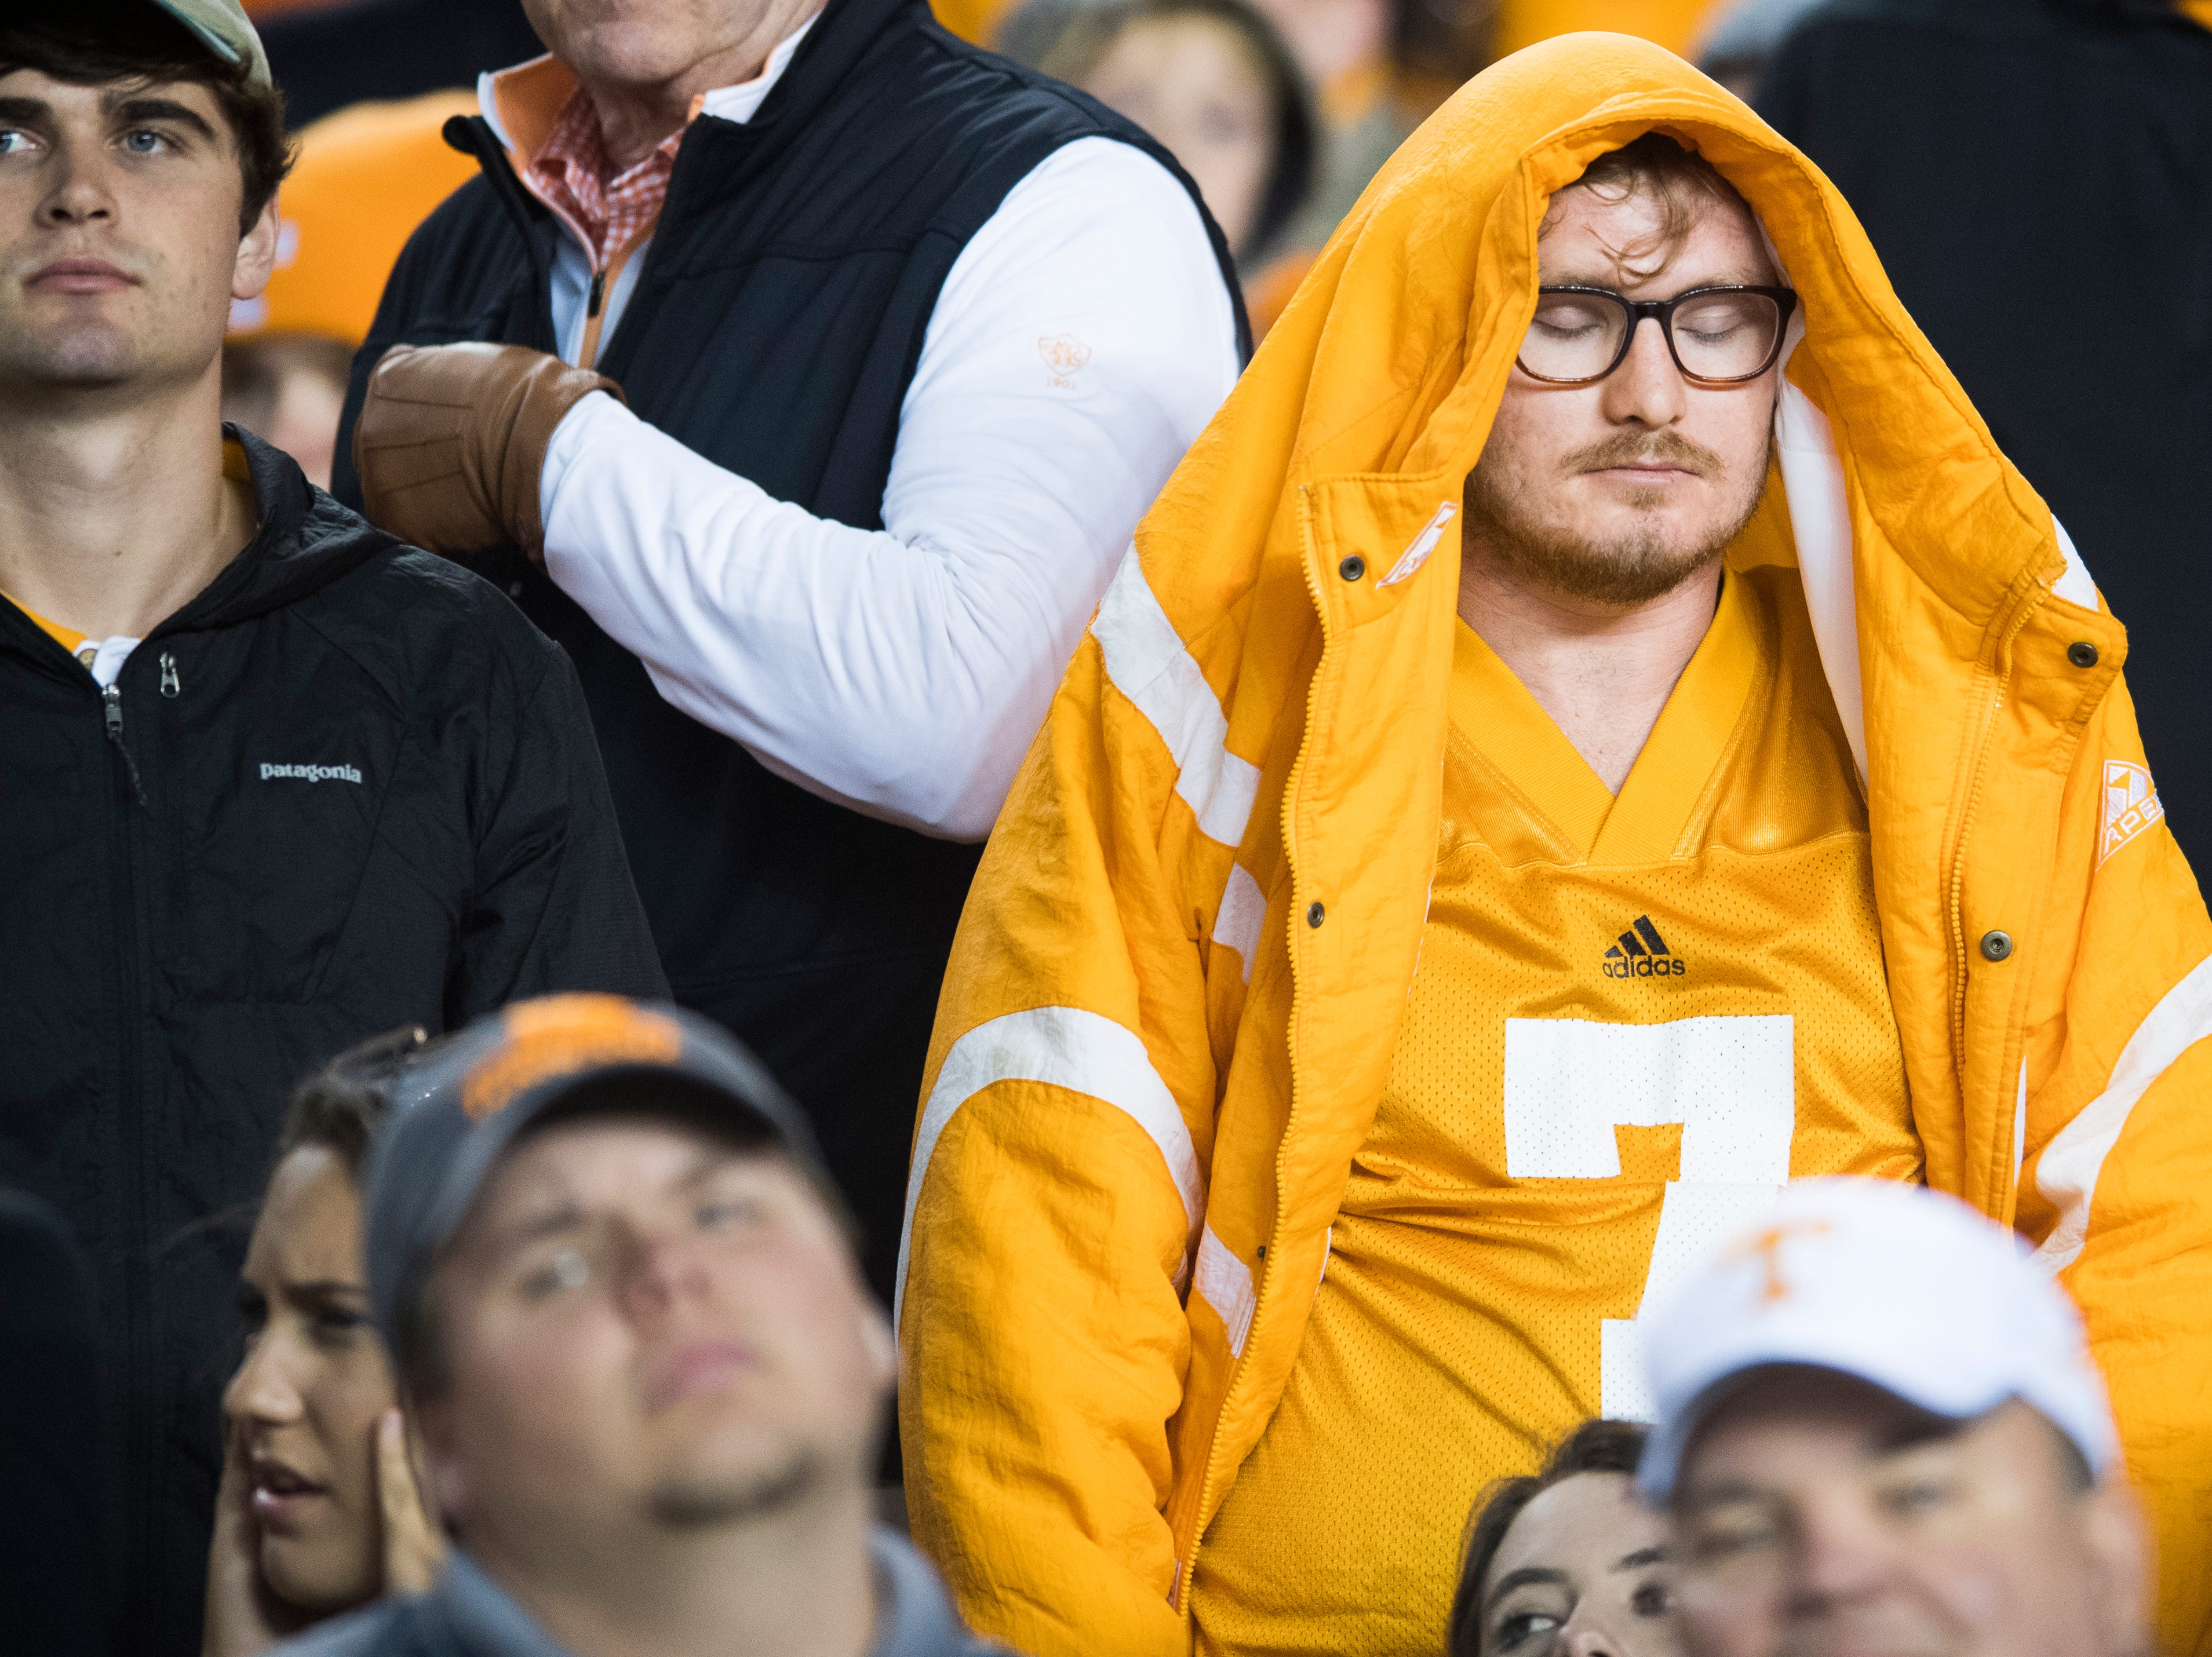 A Tennessee fan reacts to a play during a game between Tennessee and South Carolina at Williams-Brice Stadium in Columbia, South Carolina on Saturday, October 27, 2018.